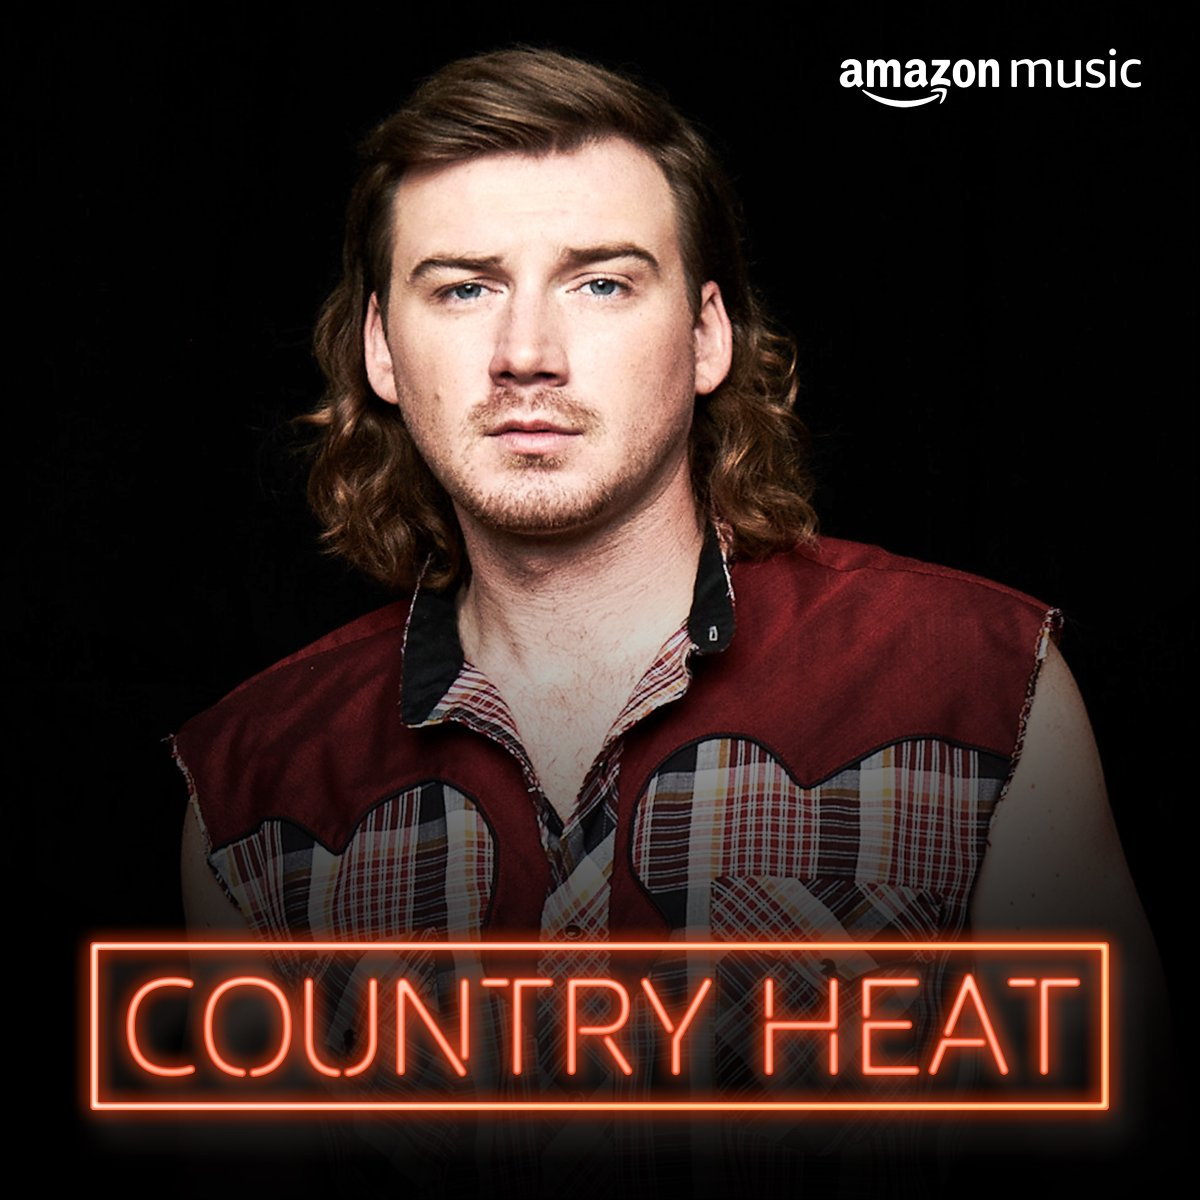 """Somebody's Problem"" is #SOTD on @amazonmusic. #JustAsk, ""Alexa, play Song of the Day to listen""  – Team MW"